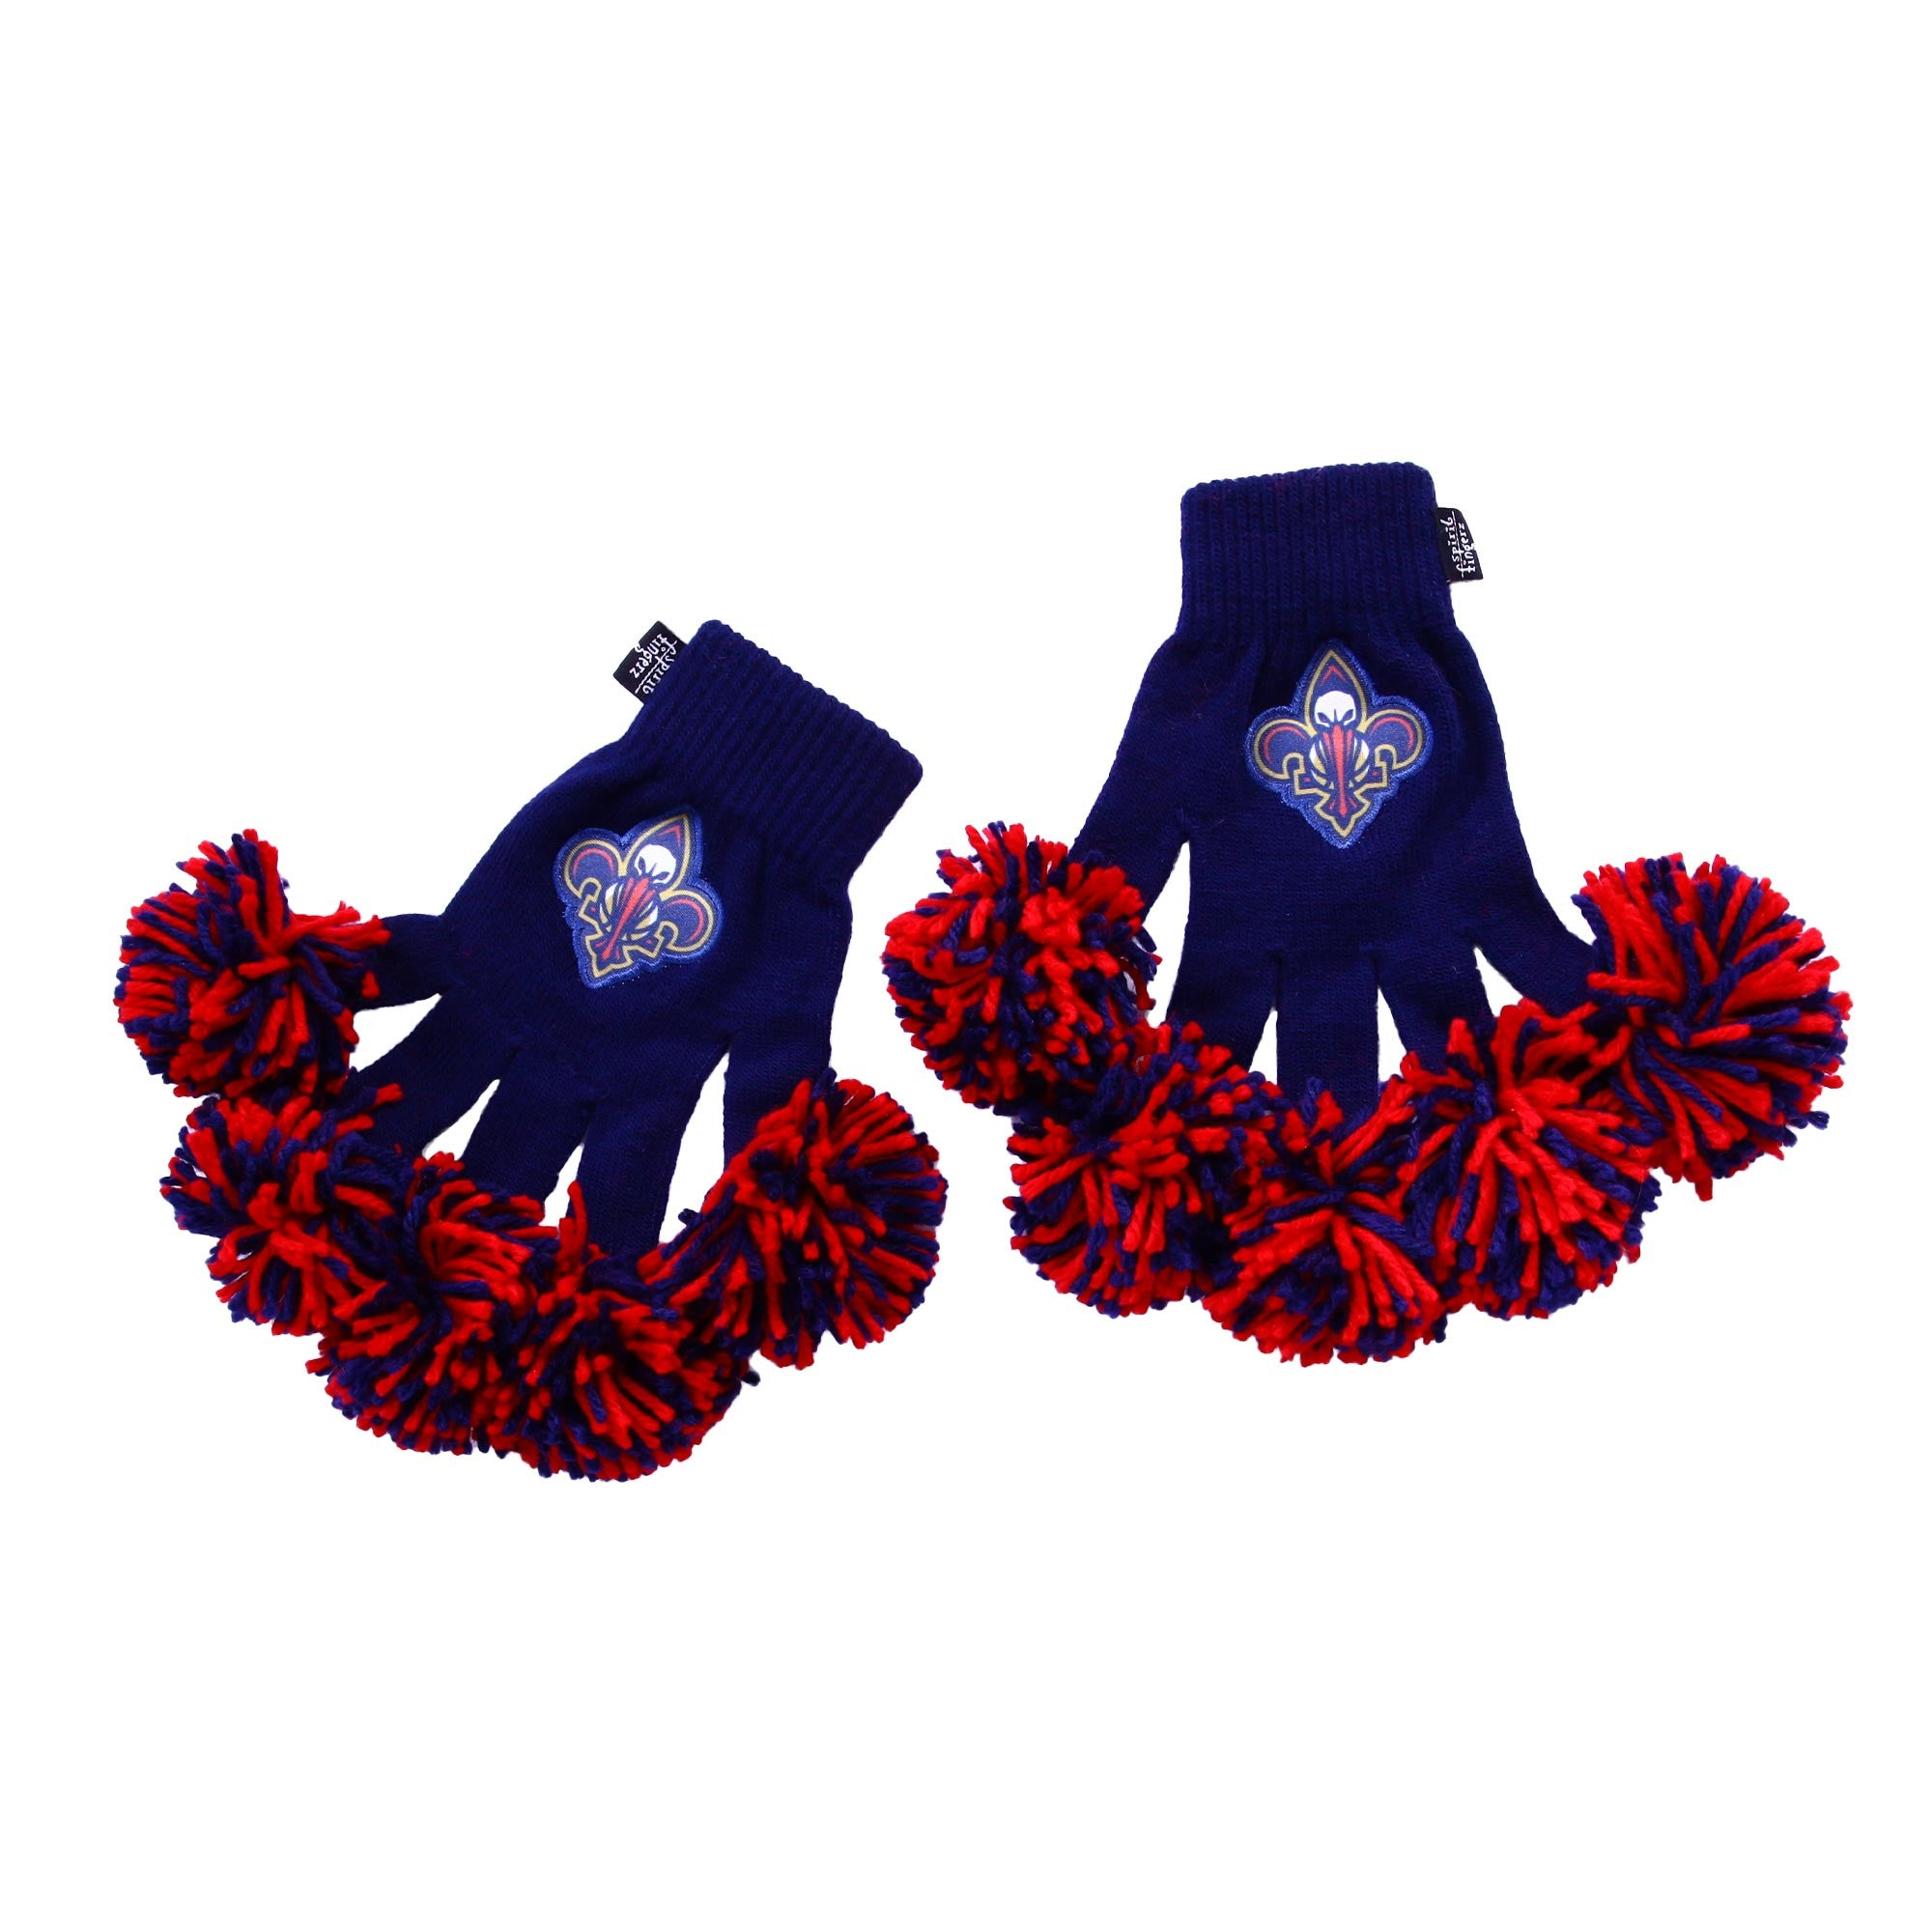 New Orleans Pelicans NBA Spirit Fingerz Cheerleading Pom-Pom Gloves